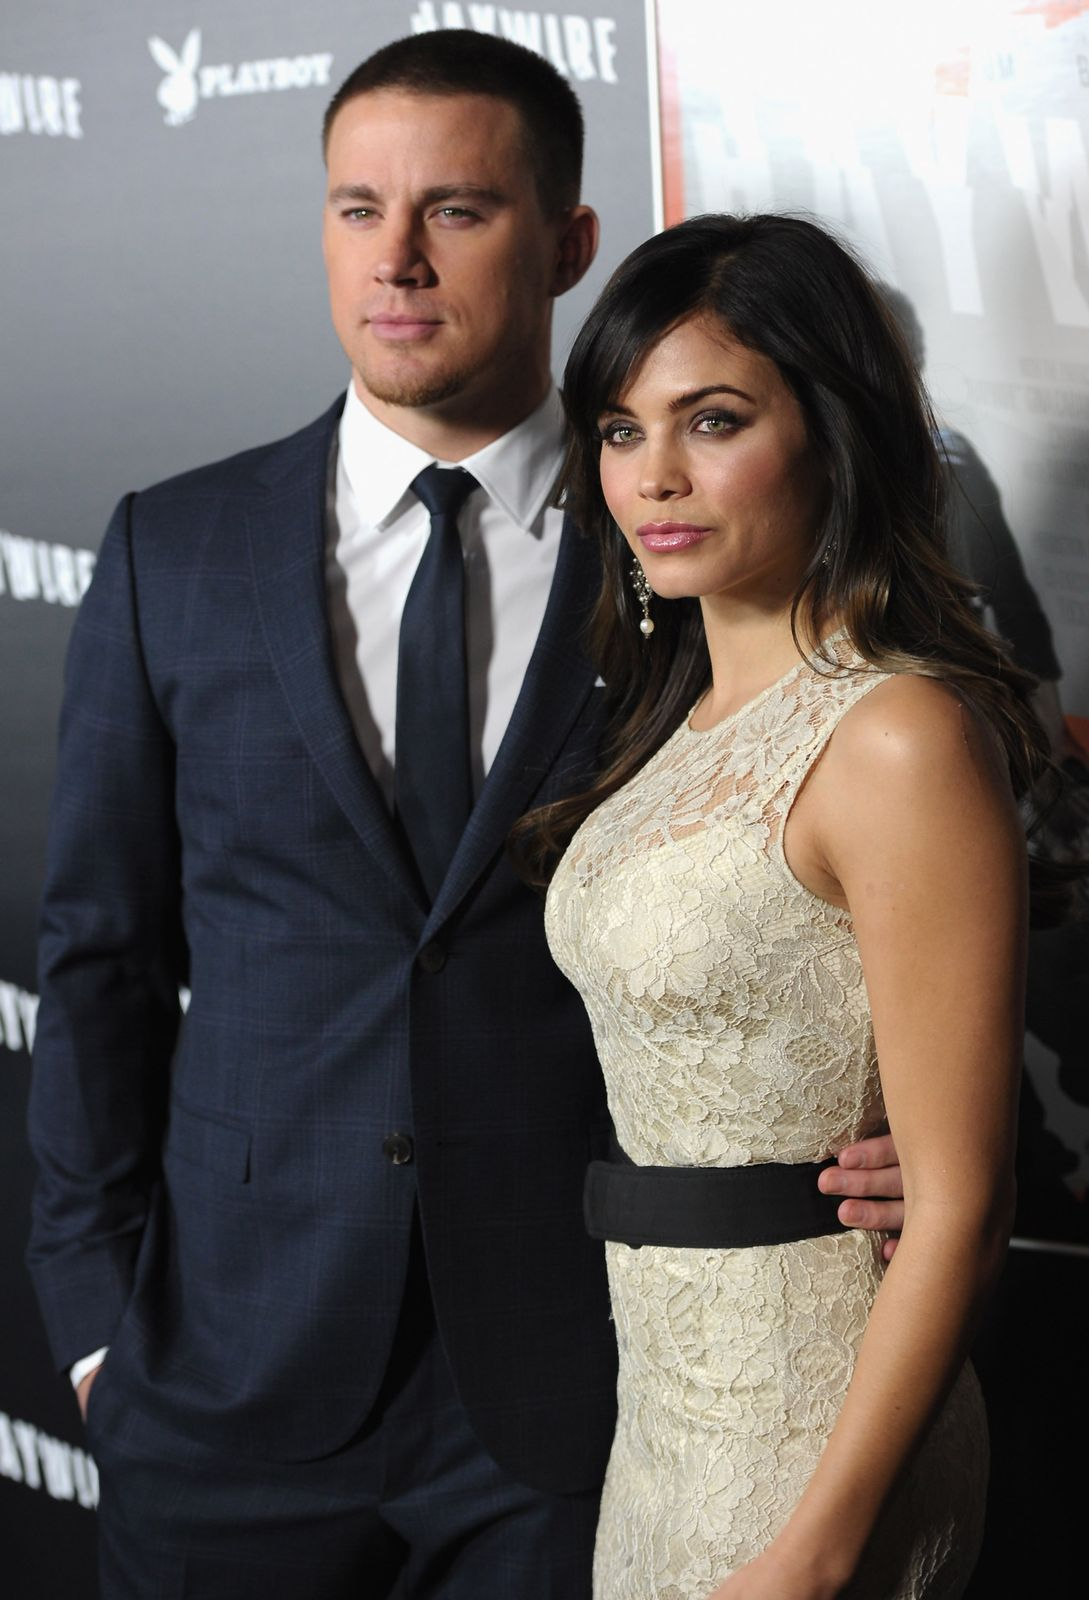 Channing Tatum and Jenna Dewan attending a red carpet event/Photo:Getty Images